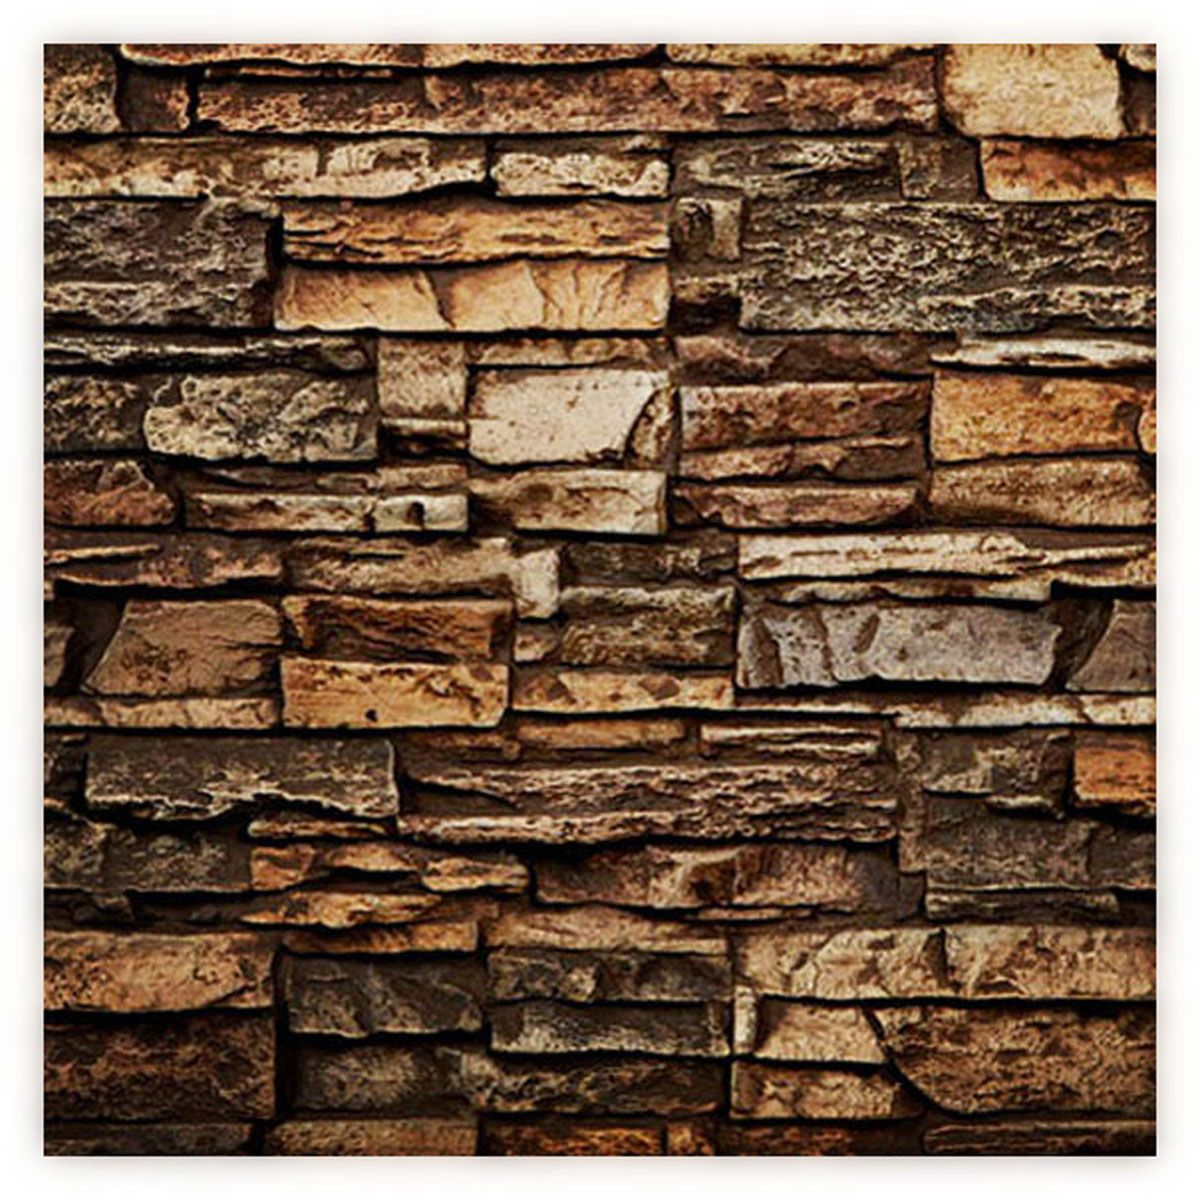 8 Inch W X 10 Inch H Stacked Endurathane Faux Stone Siding Panel Sample Geneva Stone Siding Panels Faux Stone Siding Stone Siding